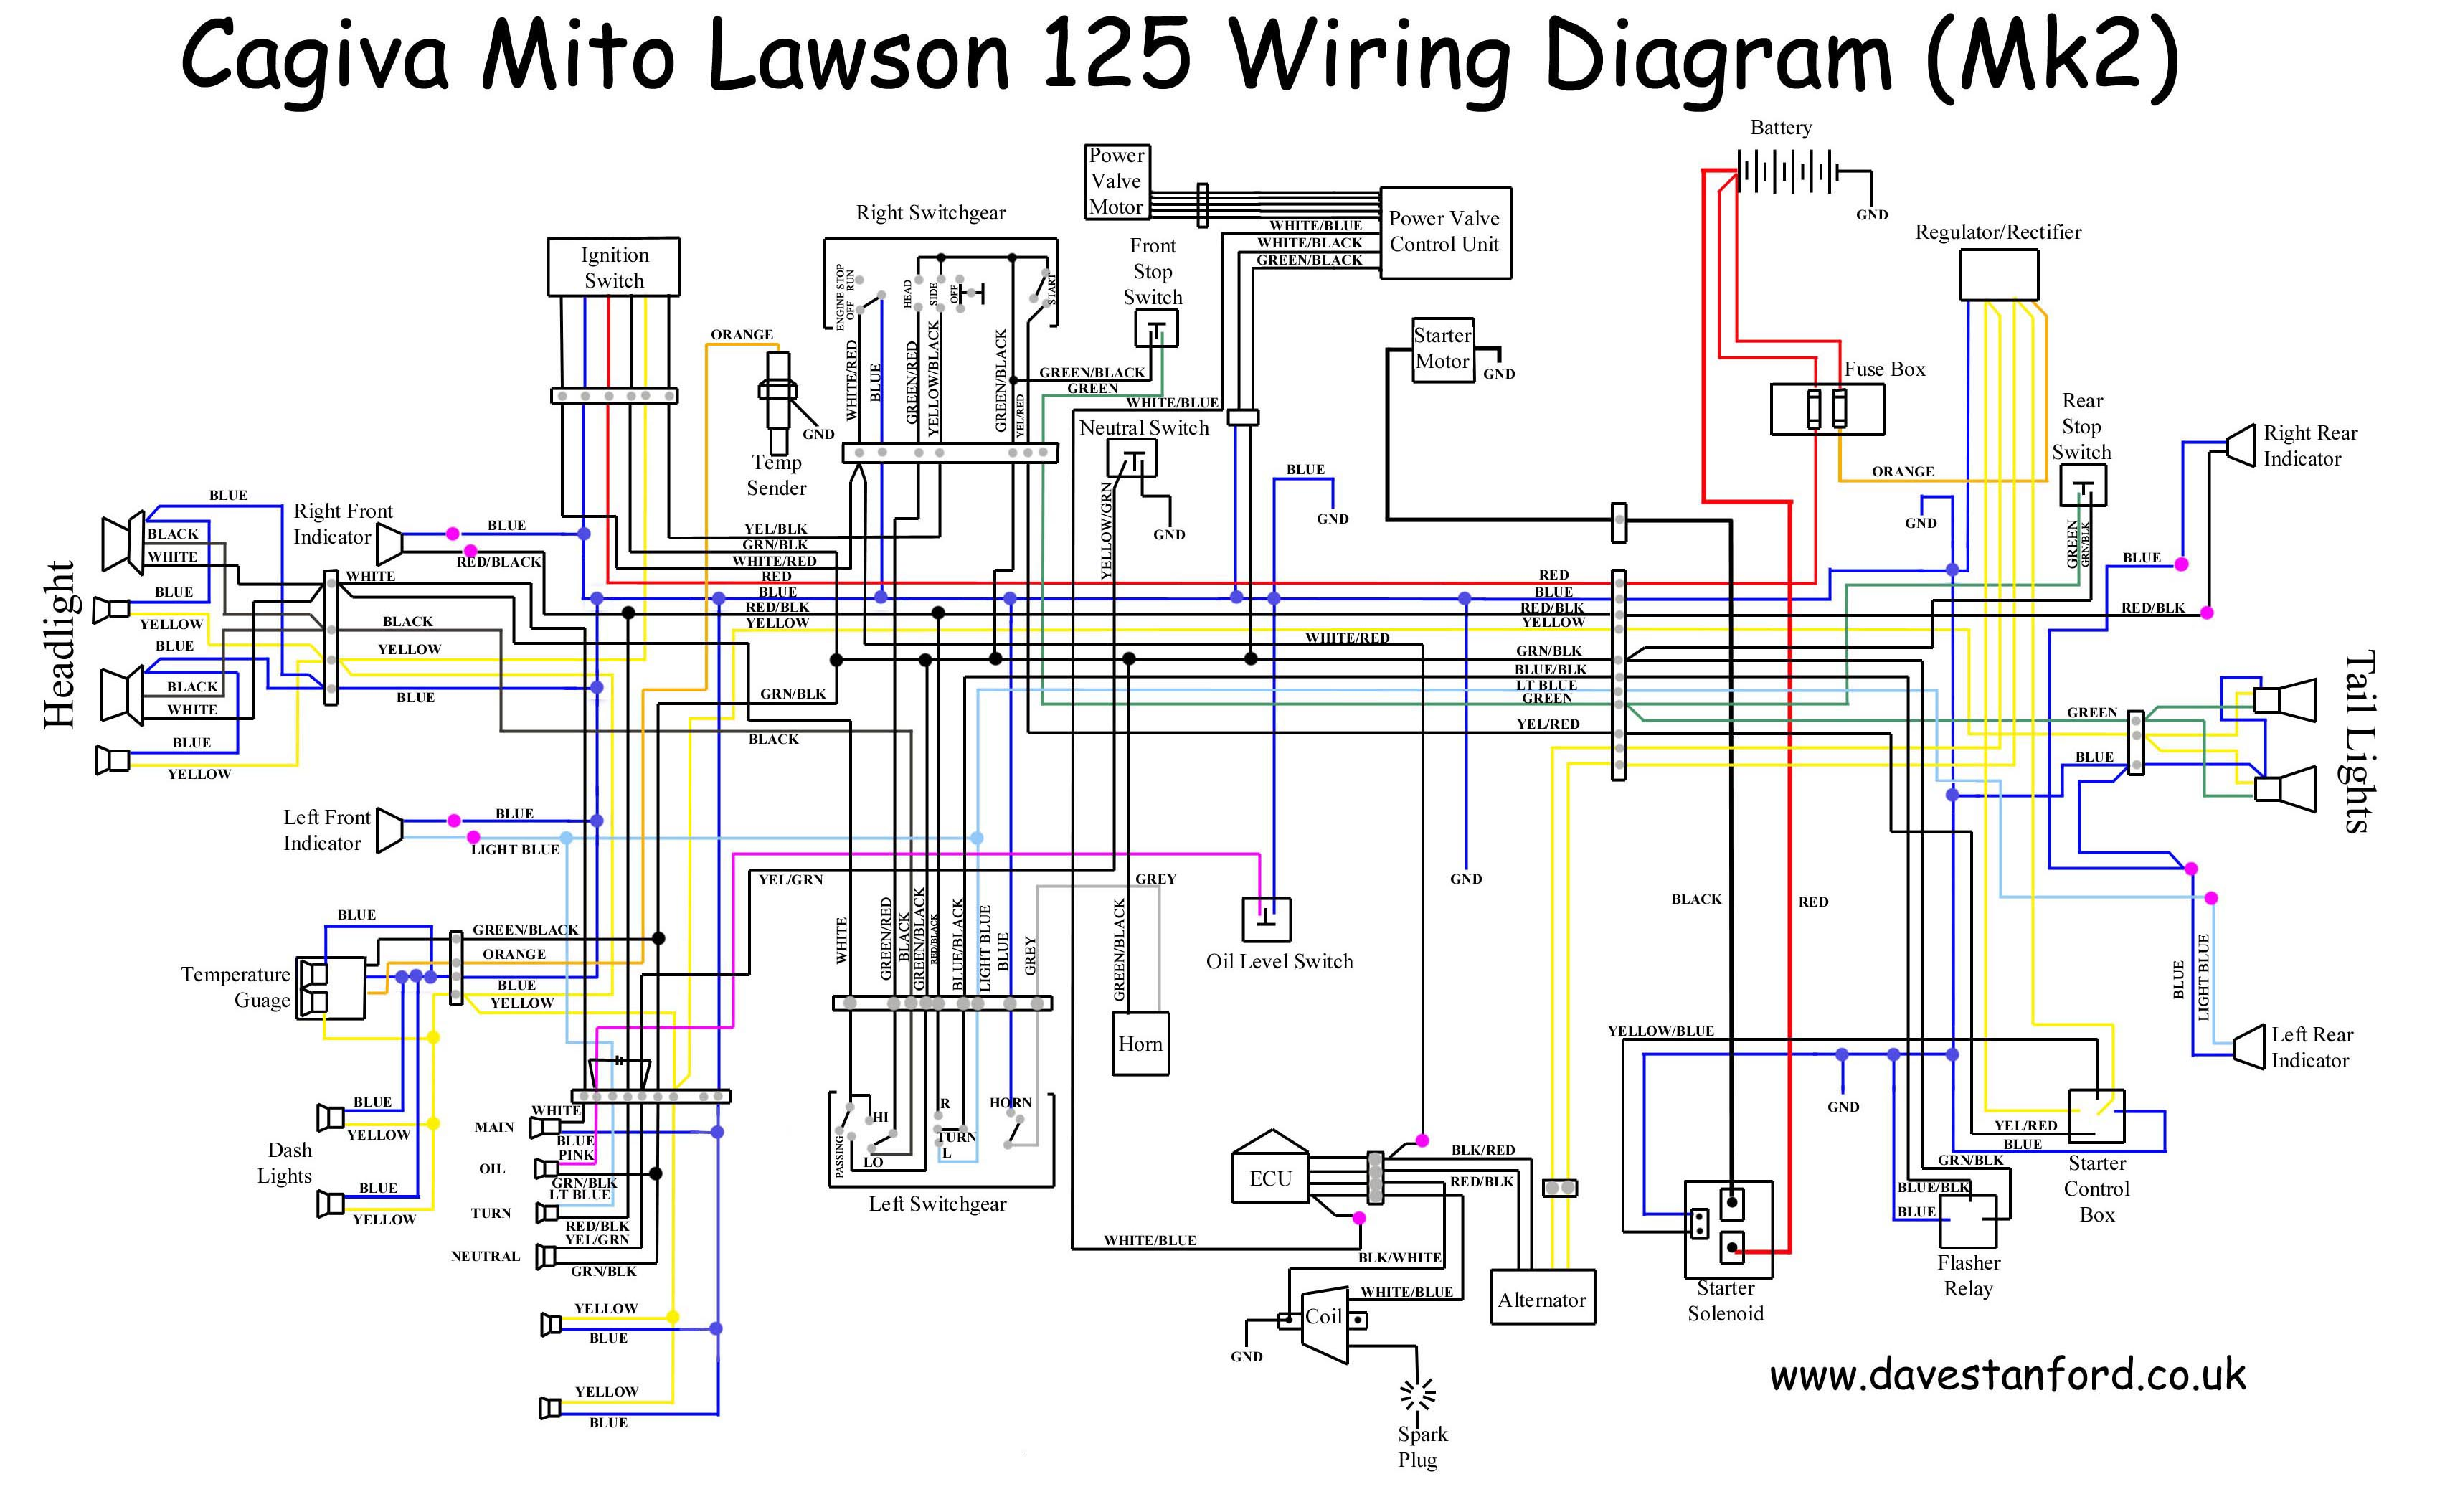 1995 Mustang Alternator Wiring Diagram further 71 72 Mgb Wiring Diagram moreover Diagrams also Showthread further 232951 Ebooks Automotive Vw Jetta Wiring Diagram 2 8 1998. on 1972 honda 350 wiring diagram